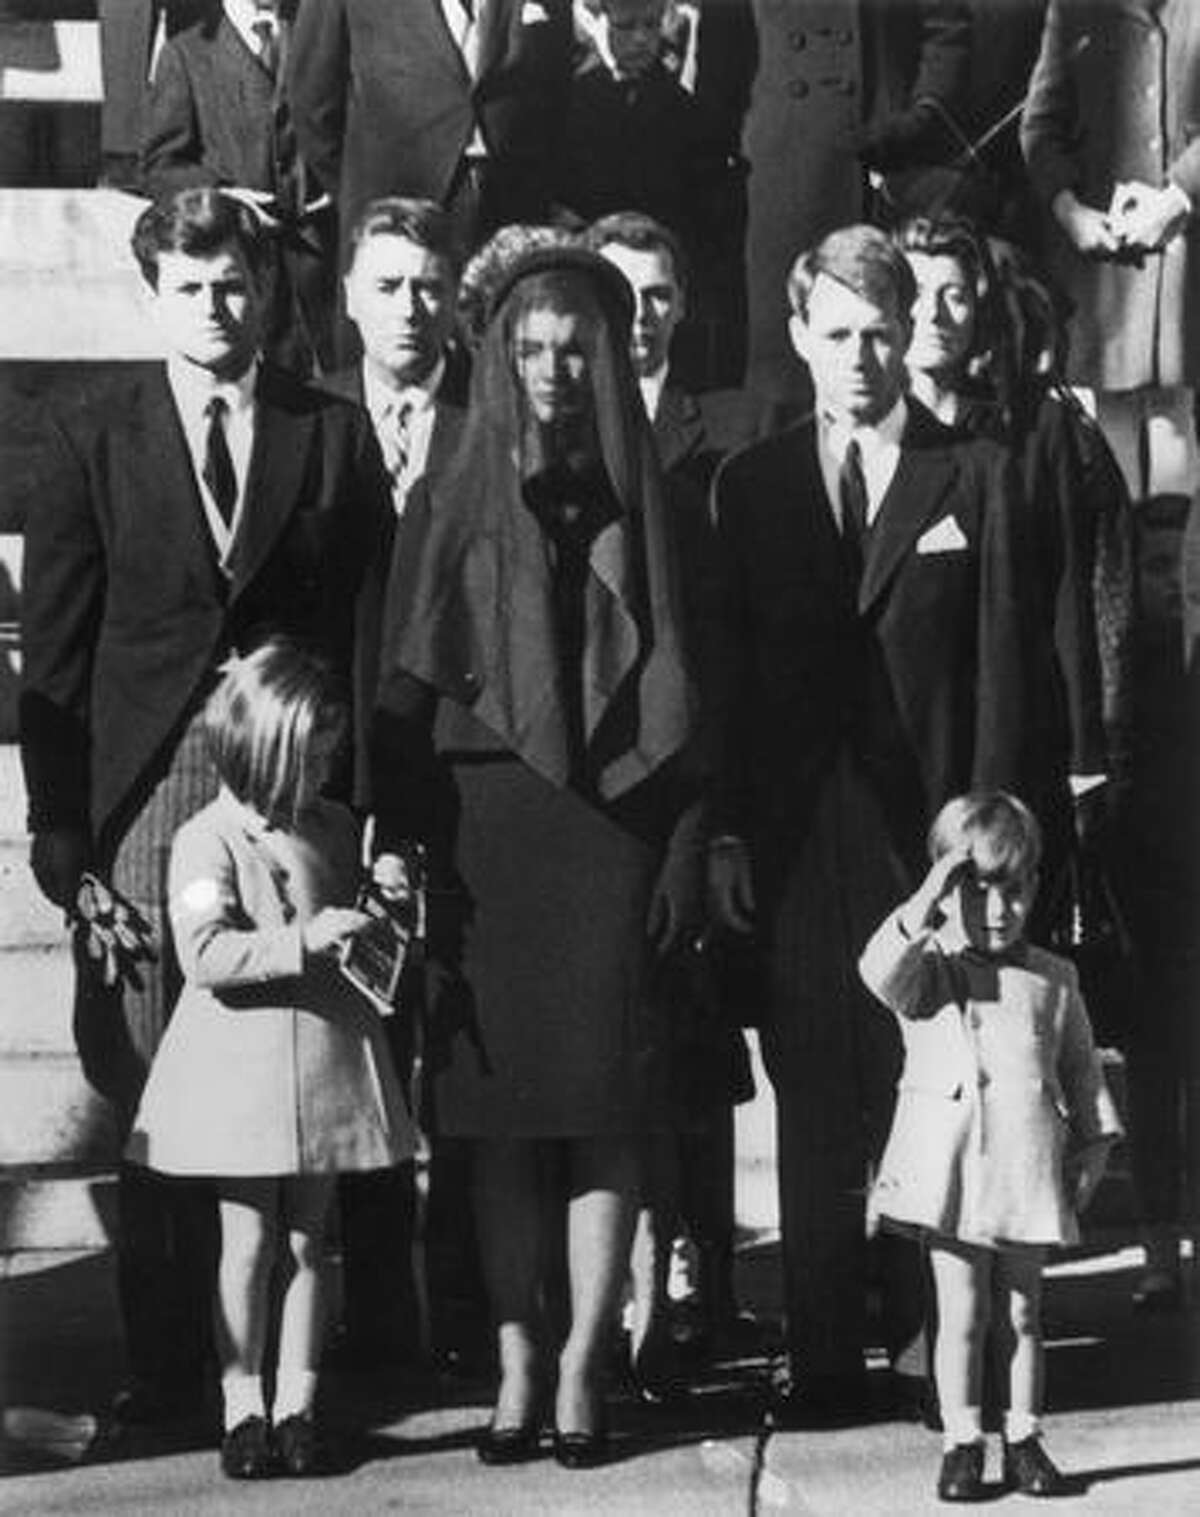 Members of the Kennedy family at the funeral of assassinated president John F. Kennedy at Washington DC. From left: Senator Edward Kennedy, Caroline Kennedy, (aged 6), Jackie Kennedy (1929 - 1994), Attorney General Robert Kennedy and John Kennedy (1960 - 1999) (aged 3).